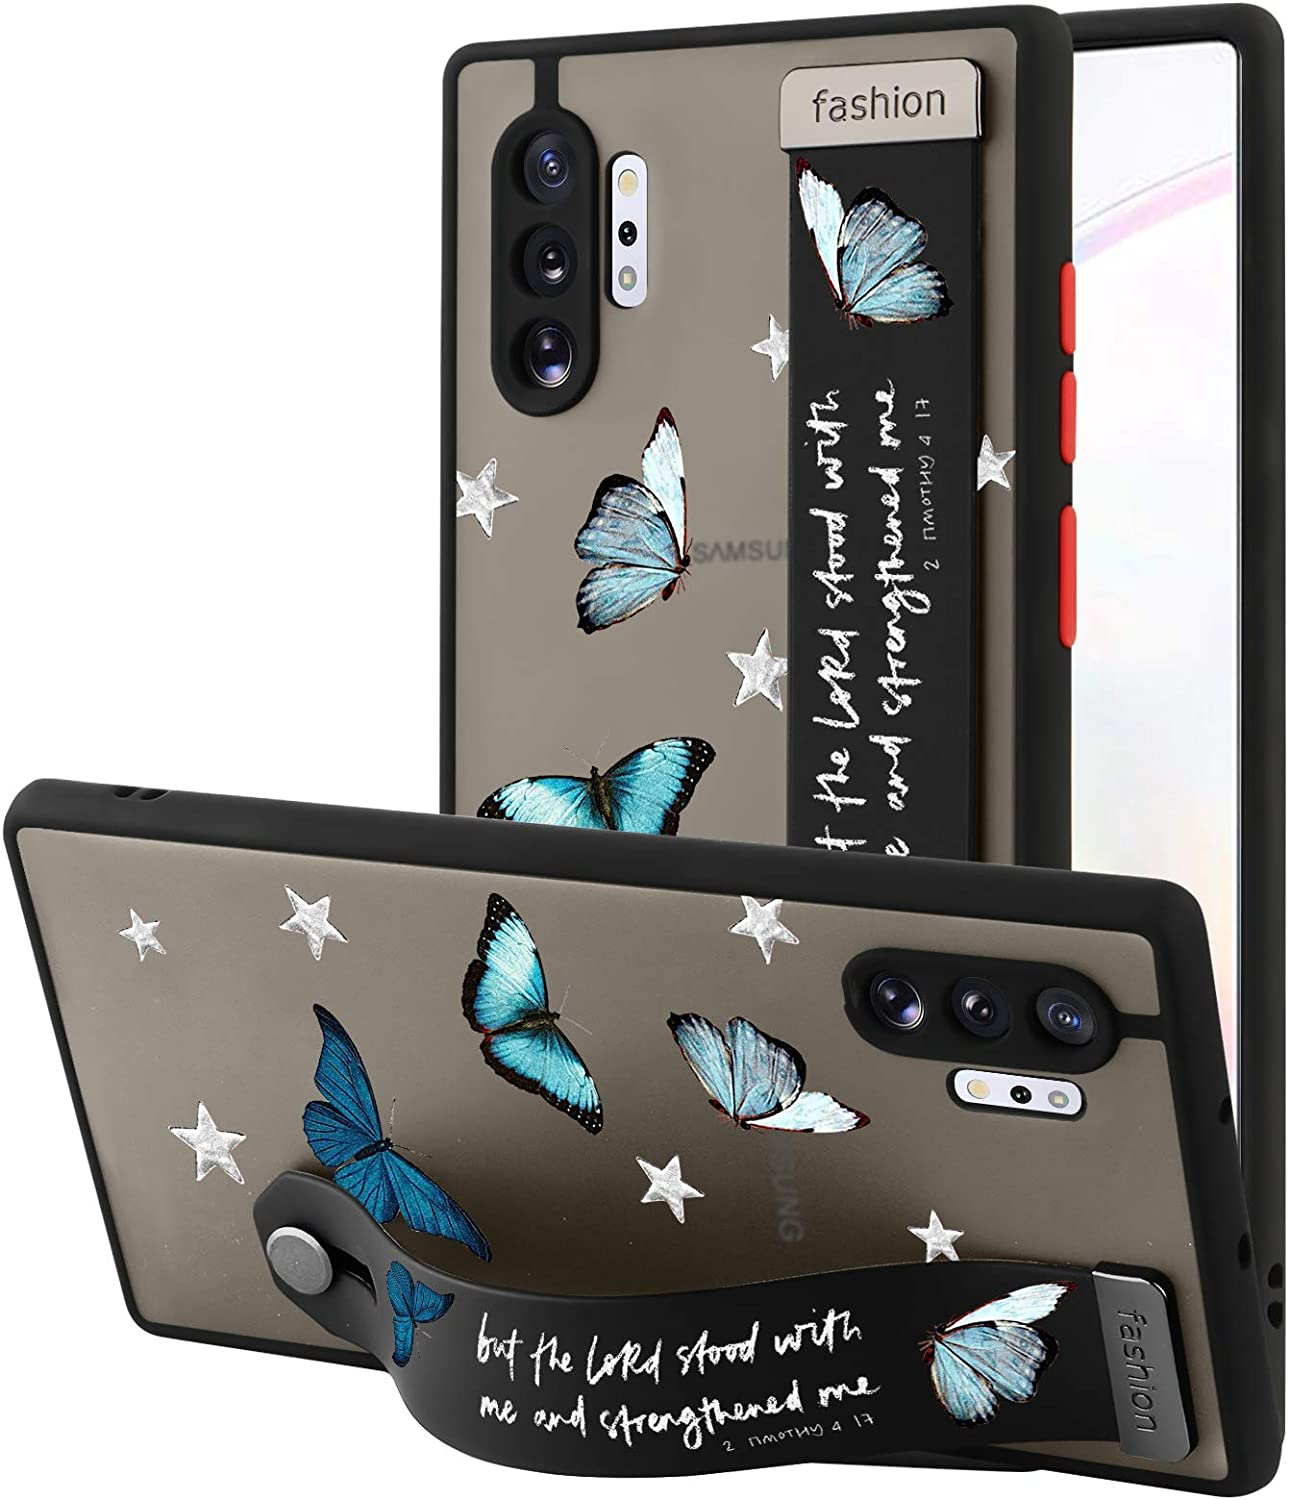 AIGOMARA Samsung Galaxy Note 10 Plus Case with Strap Clear Case Butterflies Quotes Pattern Shockproof Full Body Protection Soft TPU and Hard PC Back Scratch-Resistant Slim Cover for Galaxy Note 10+